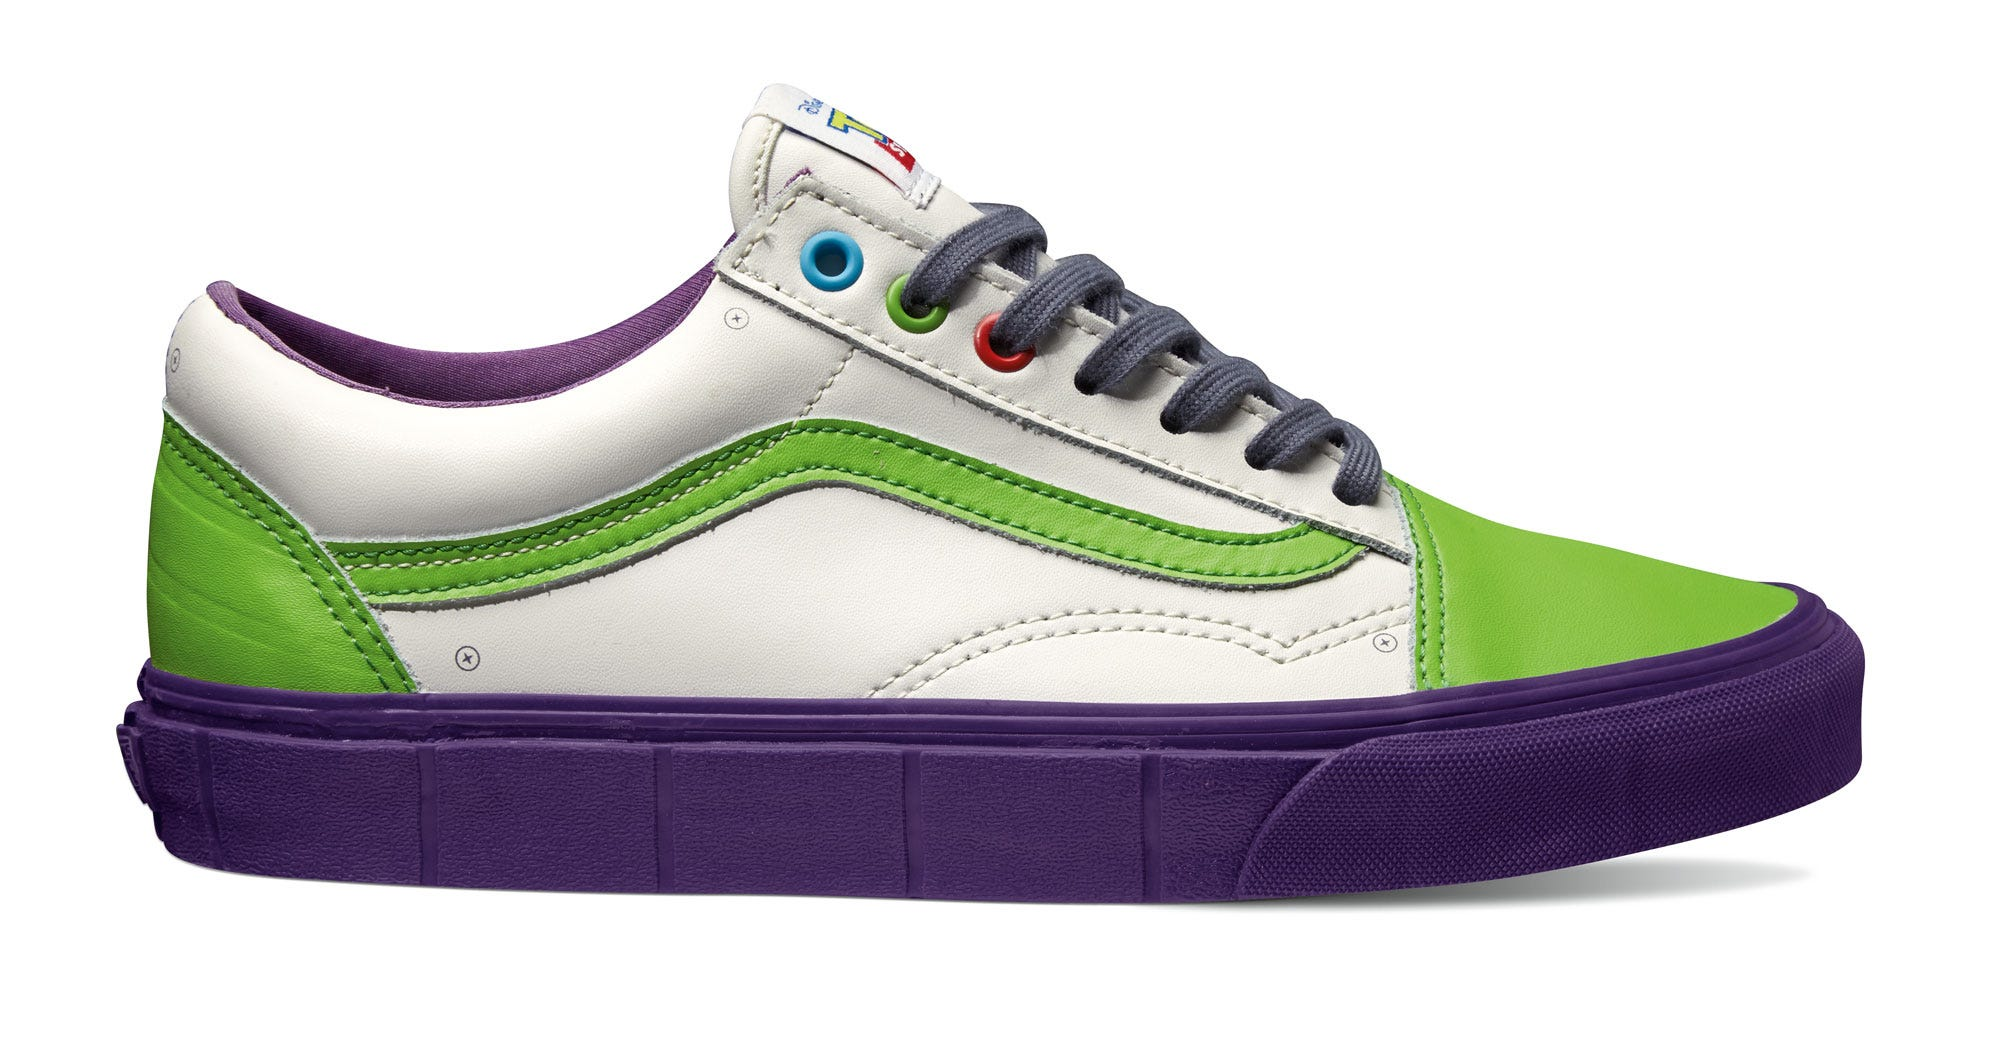 eccfbe0eca Vans Toy Story Collaboration - Buzz Lightyear Sneakers